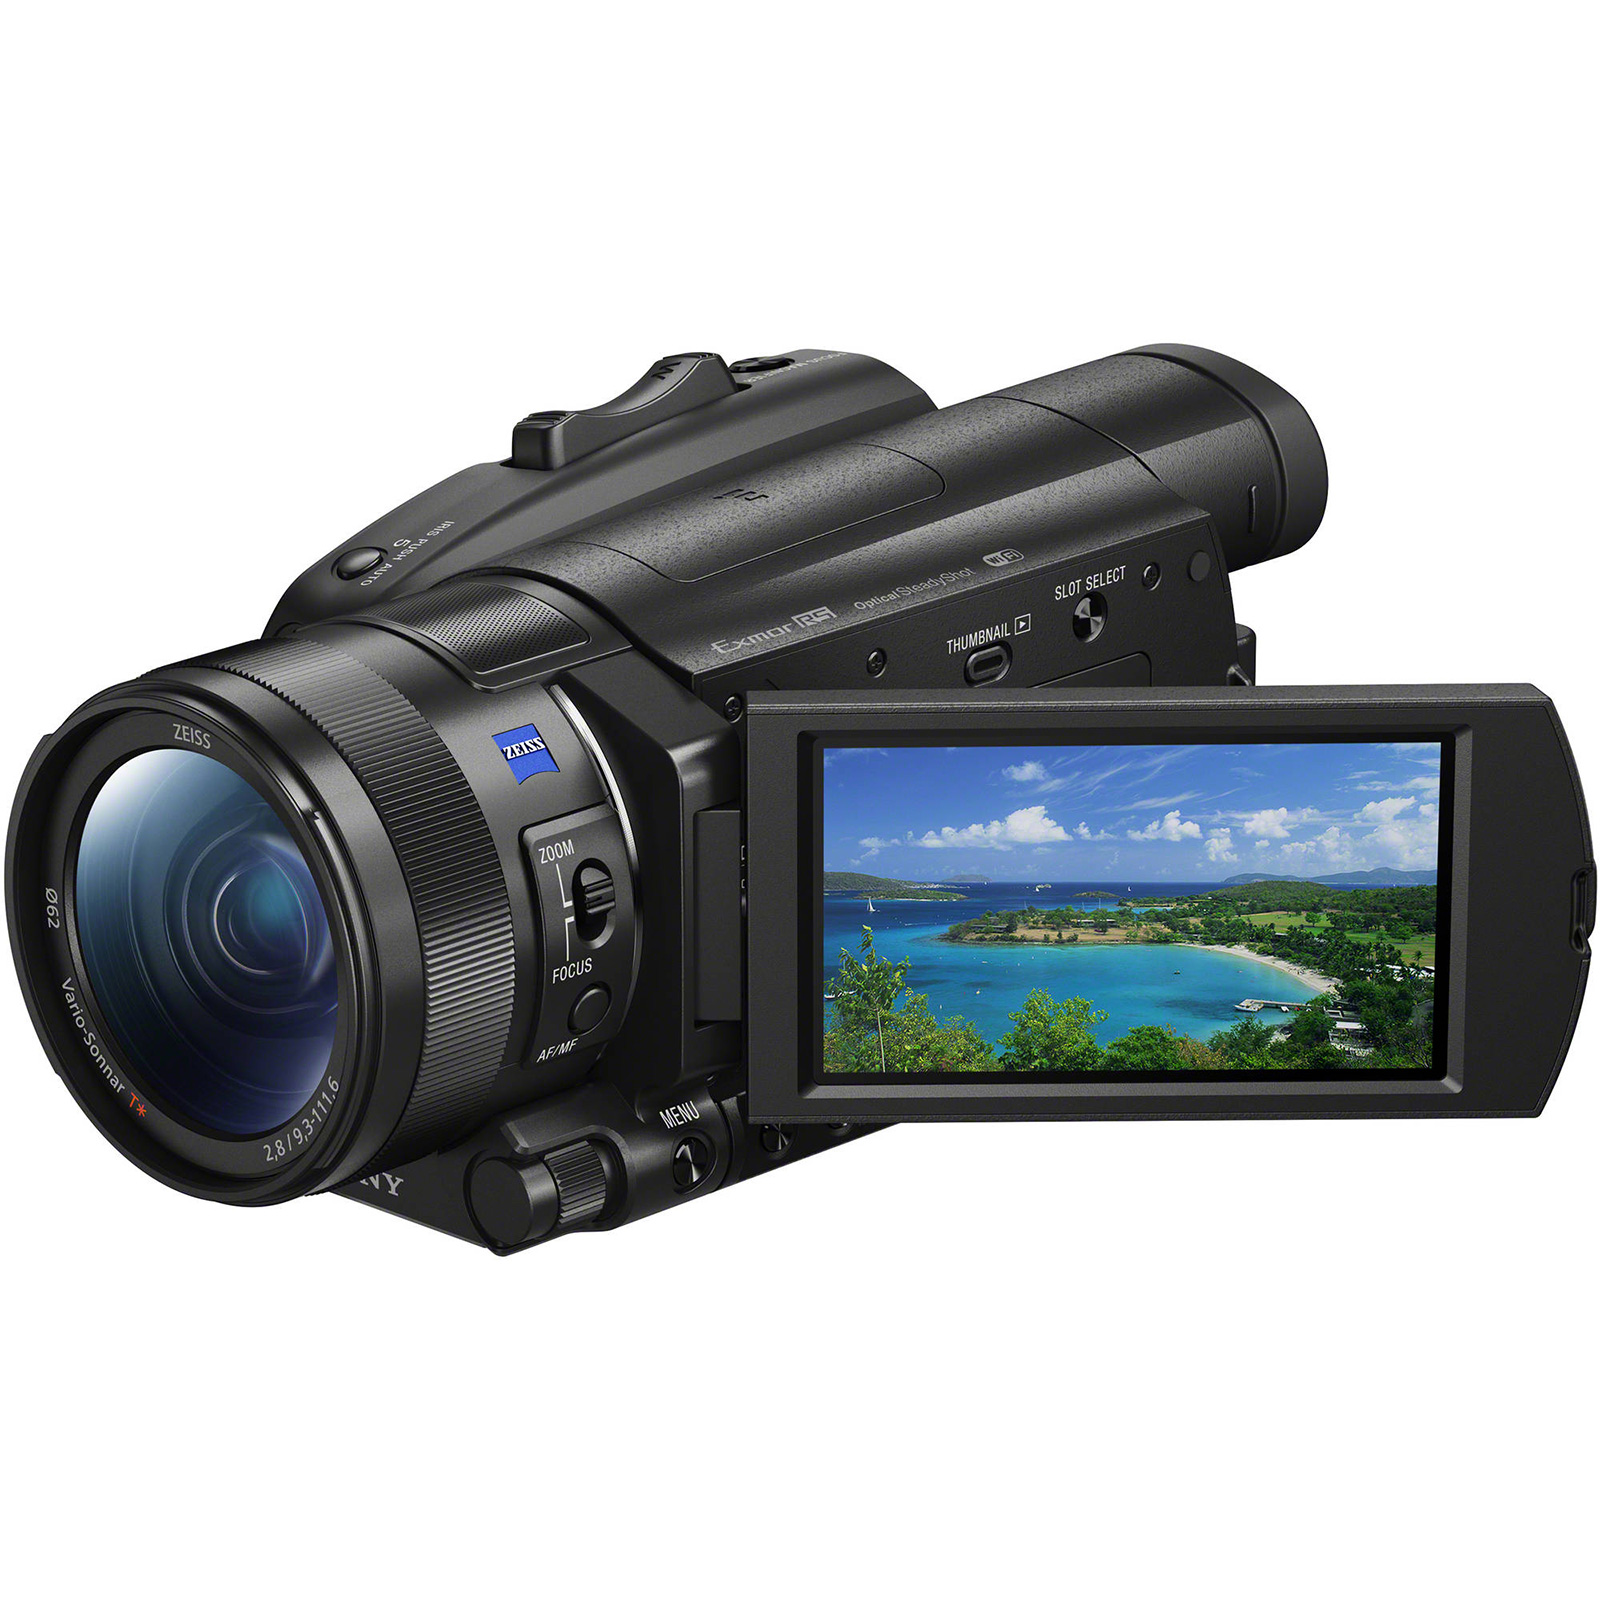 Sony Handycam FDR-AX700 4K HD Video Camera Camcorder by Sony